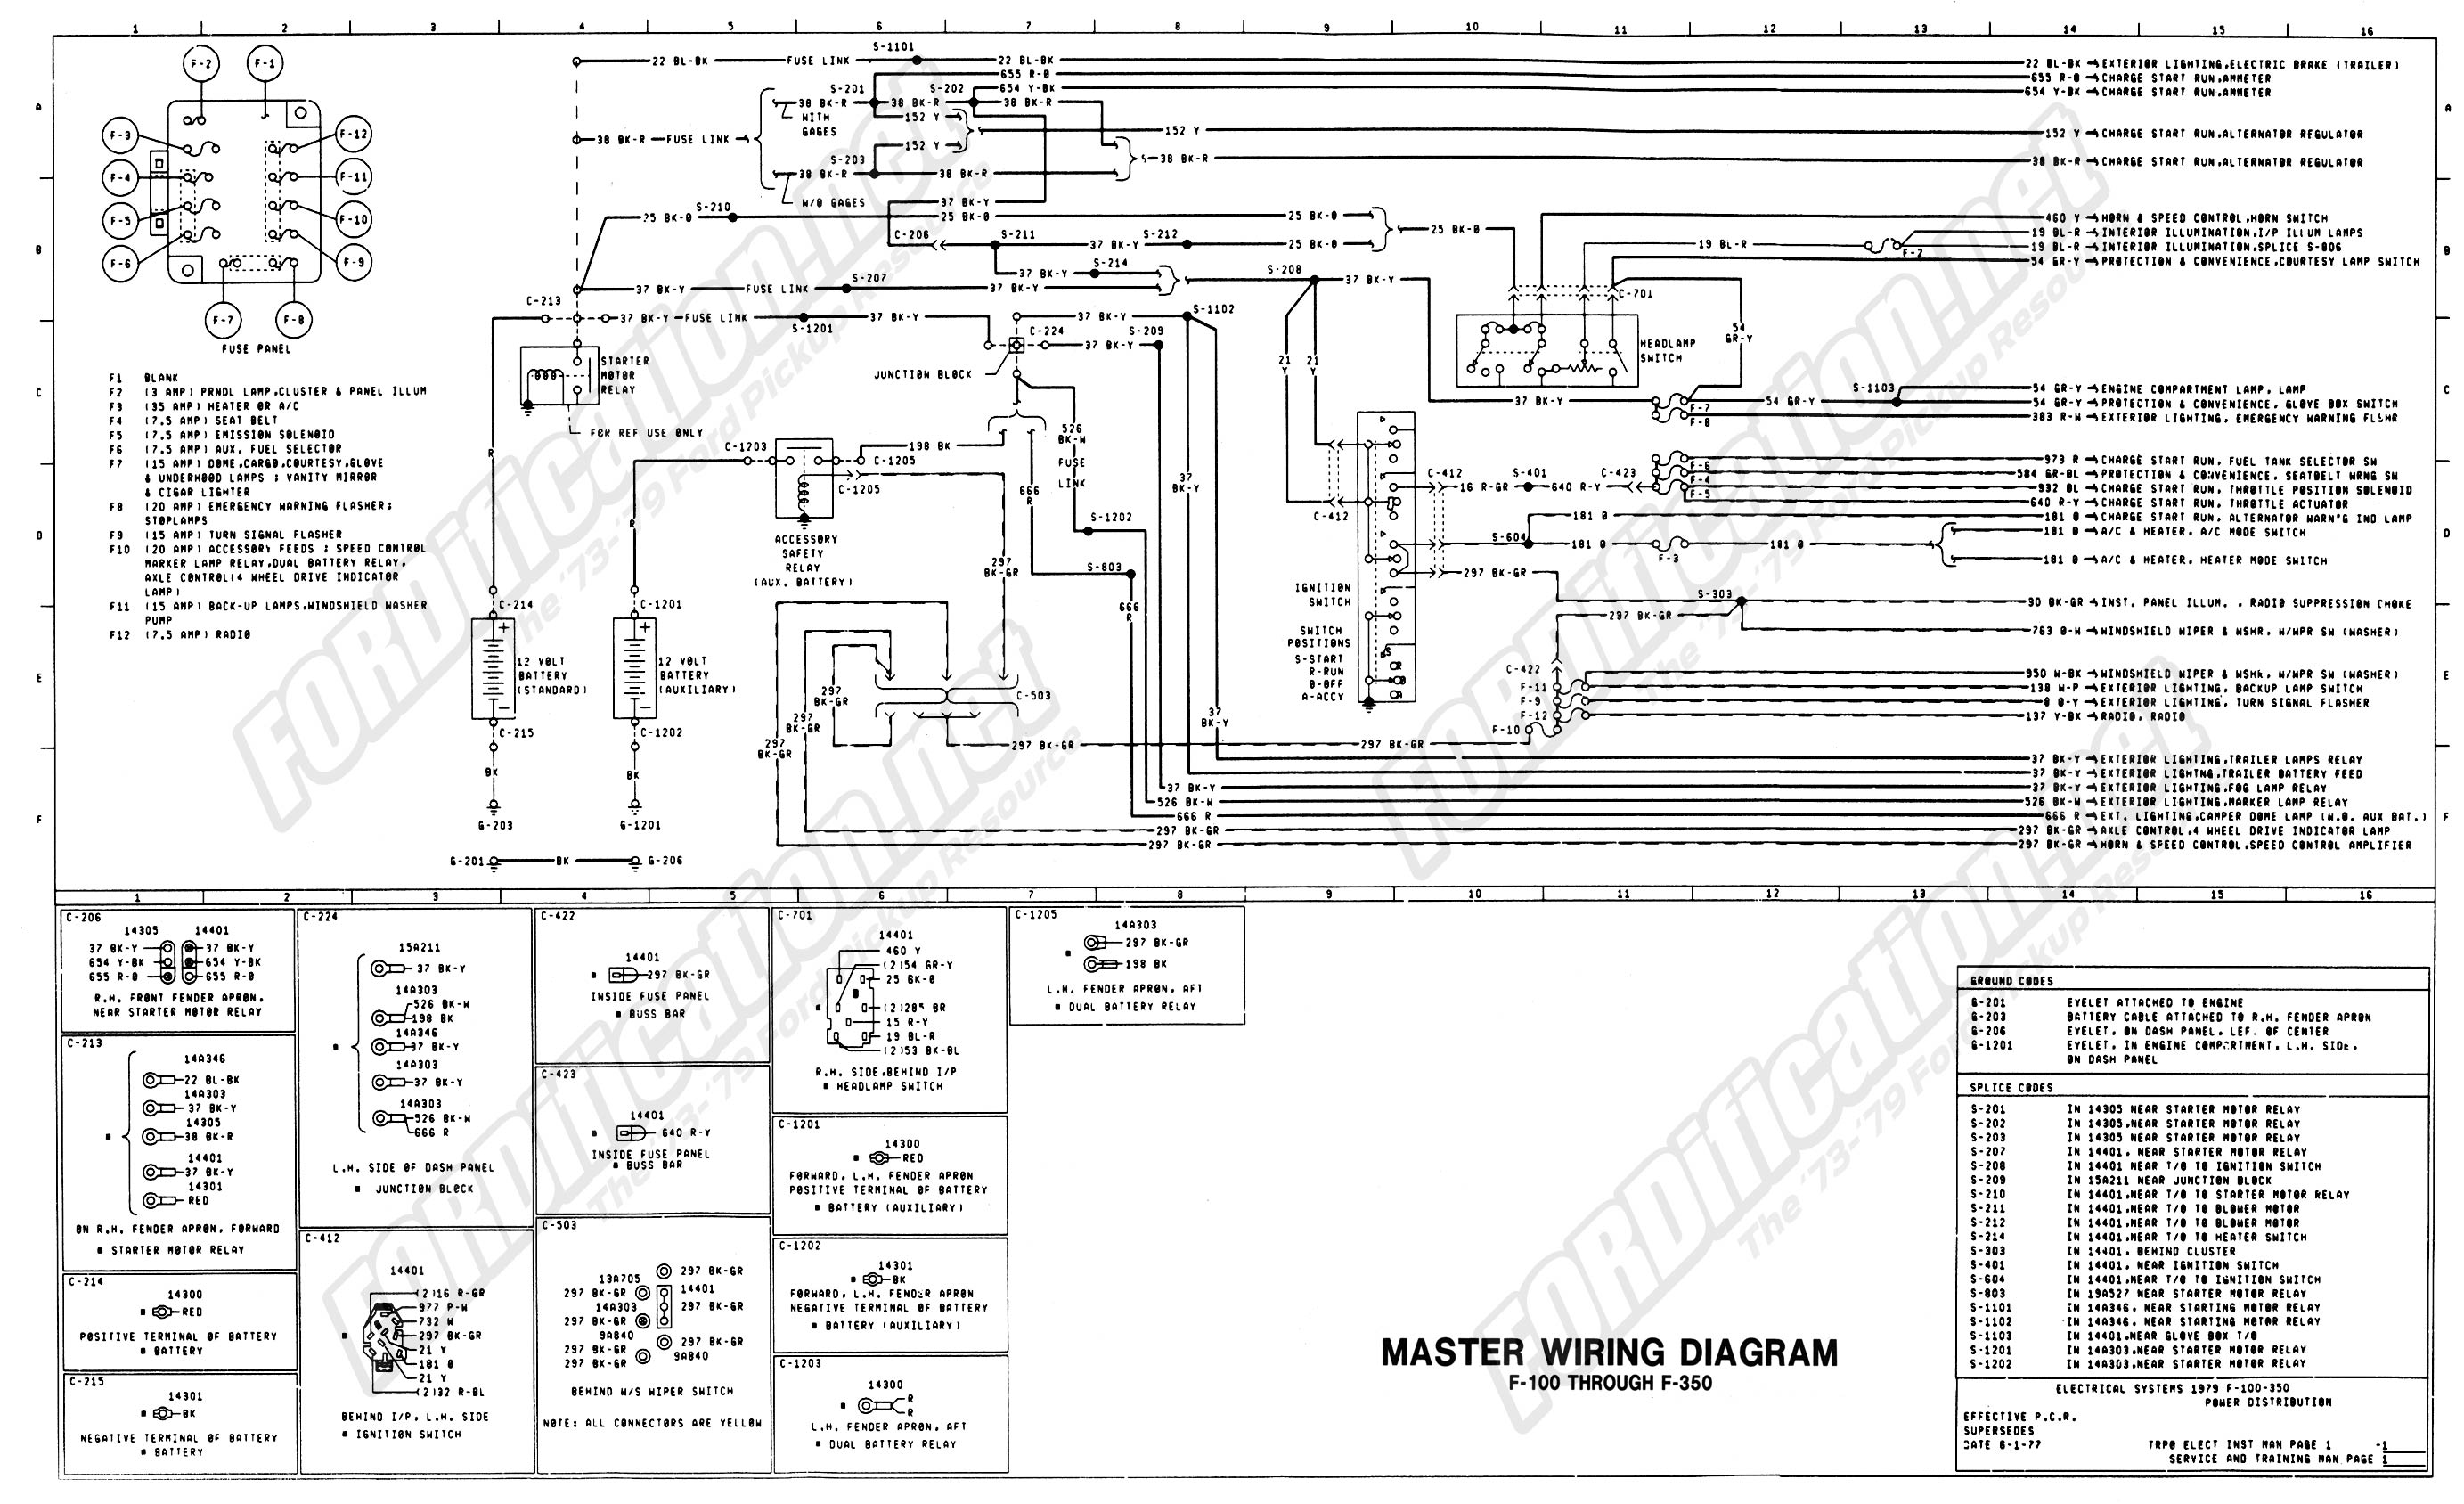 wiring_79master_1of9 1973 1979 ford truck wiring diagrams & schematics fordification net  at eliteediting.co